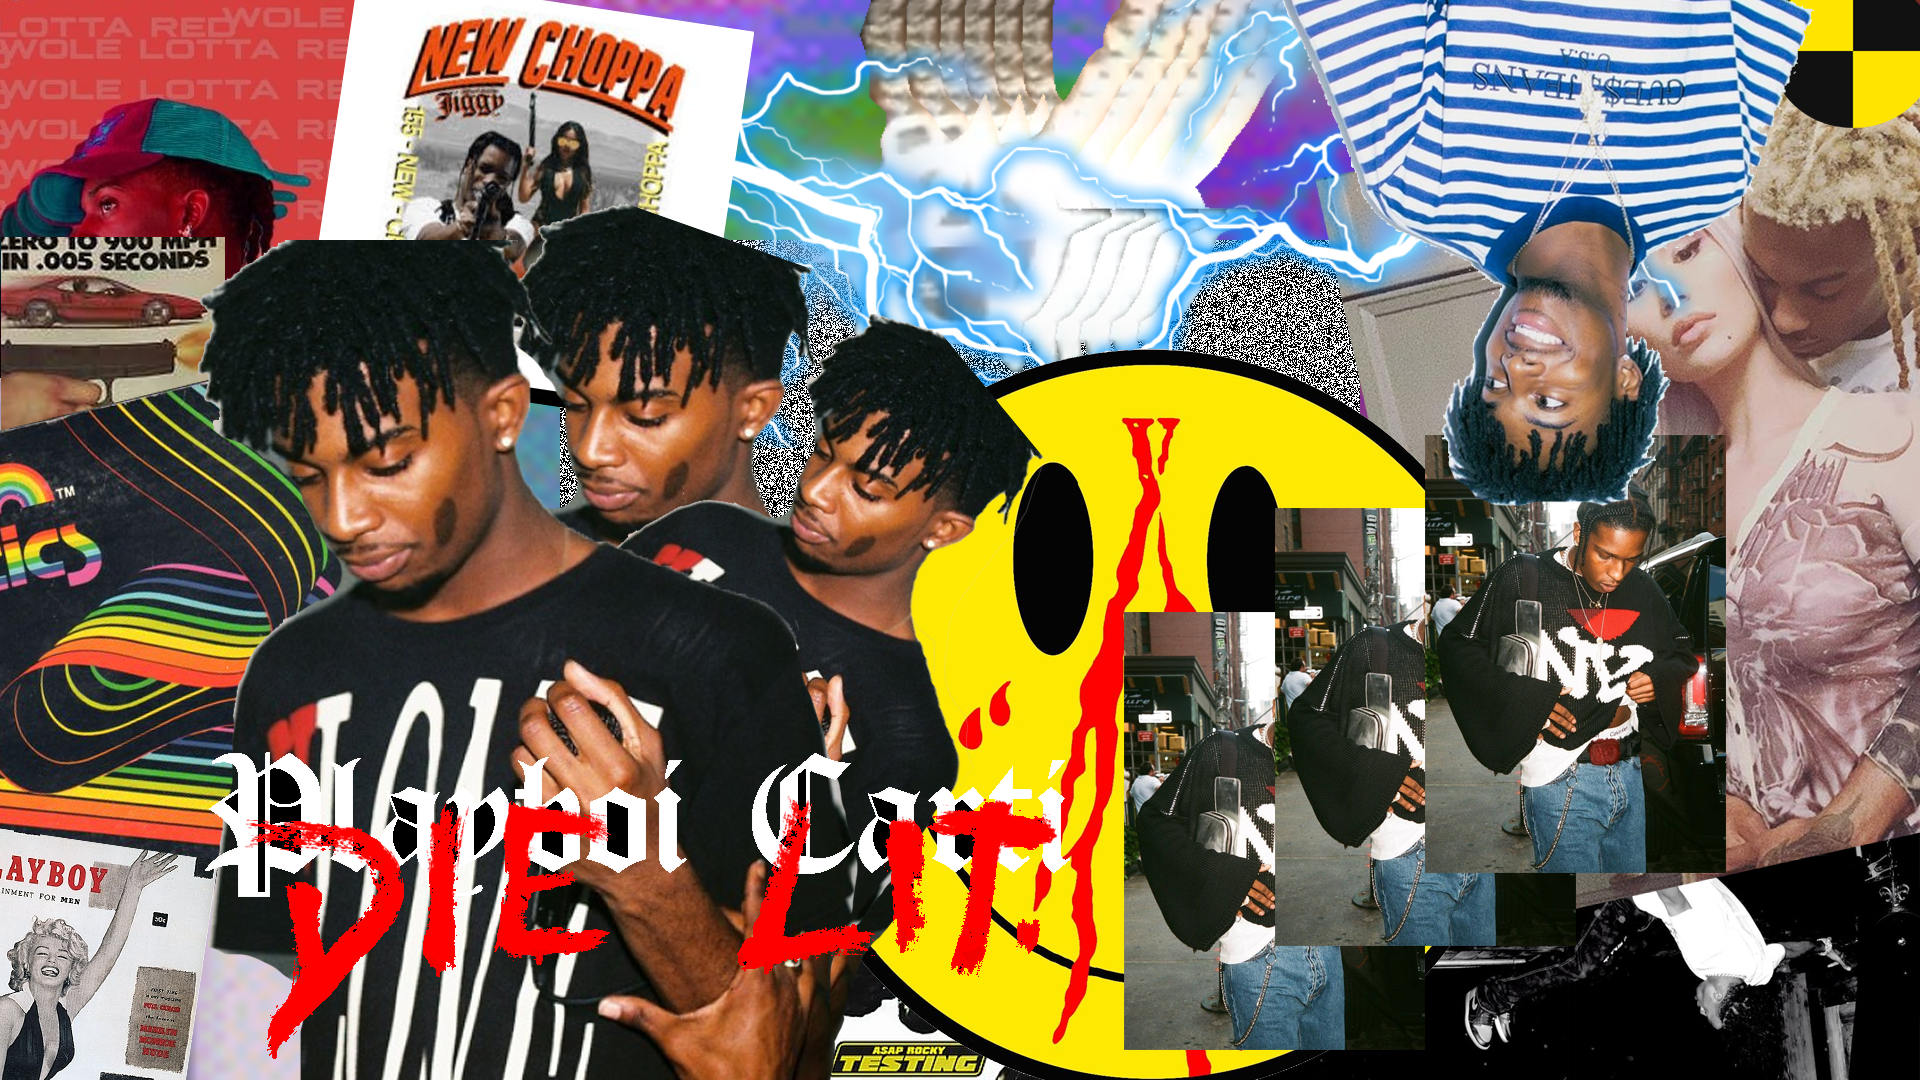 Playboi Carti Collage background/wallpaper. Rap